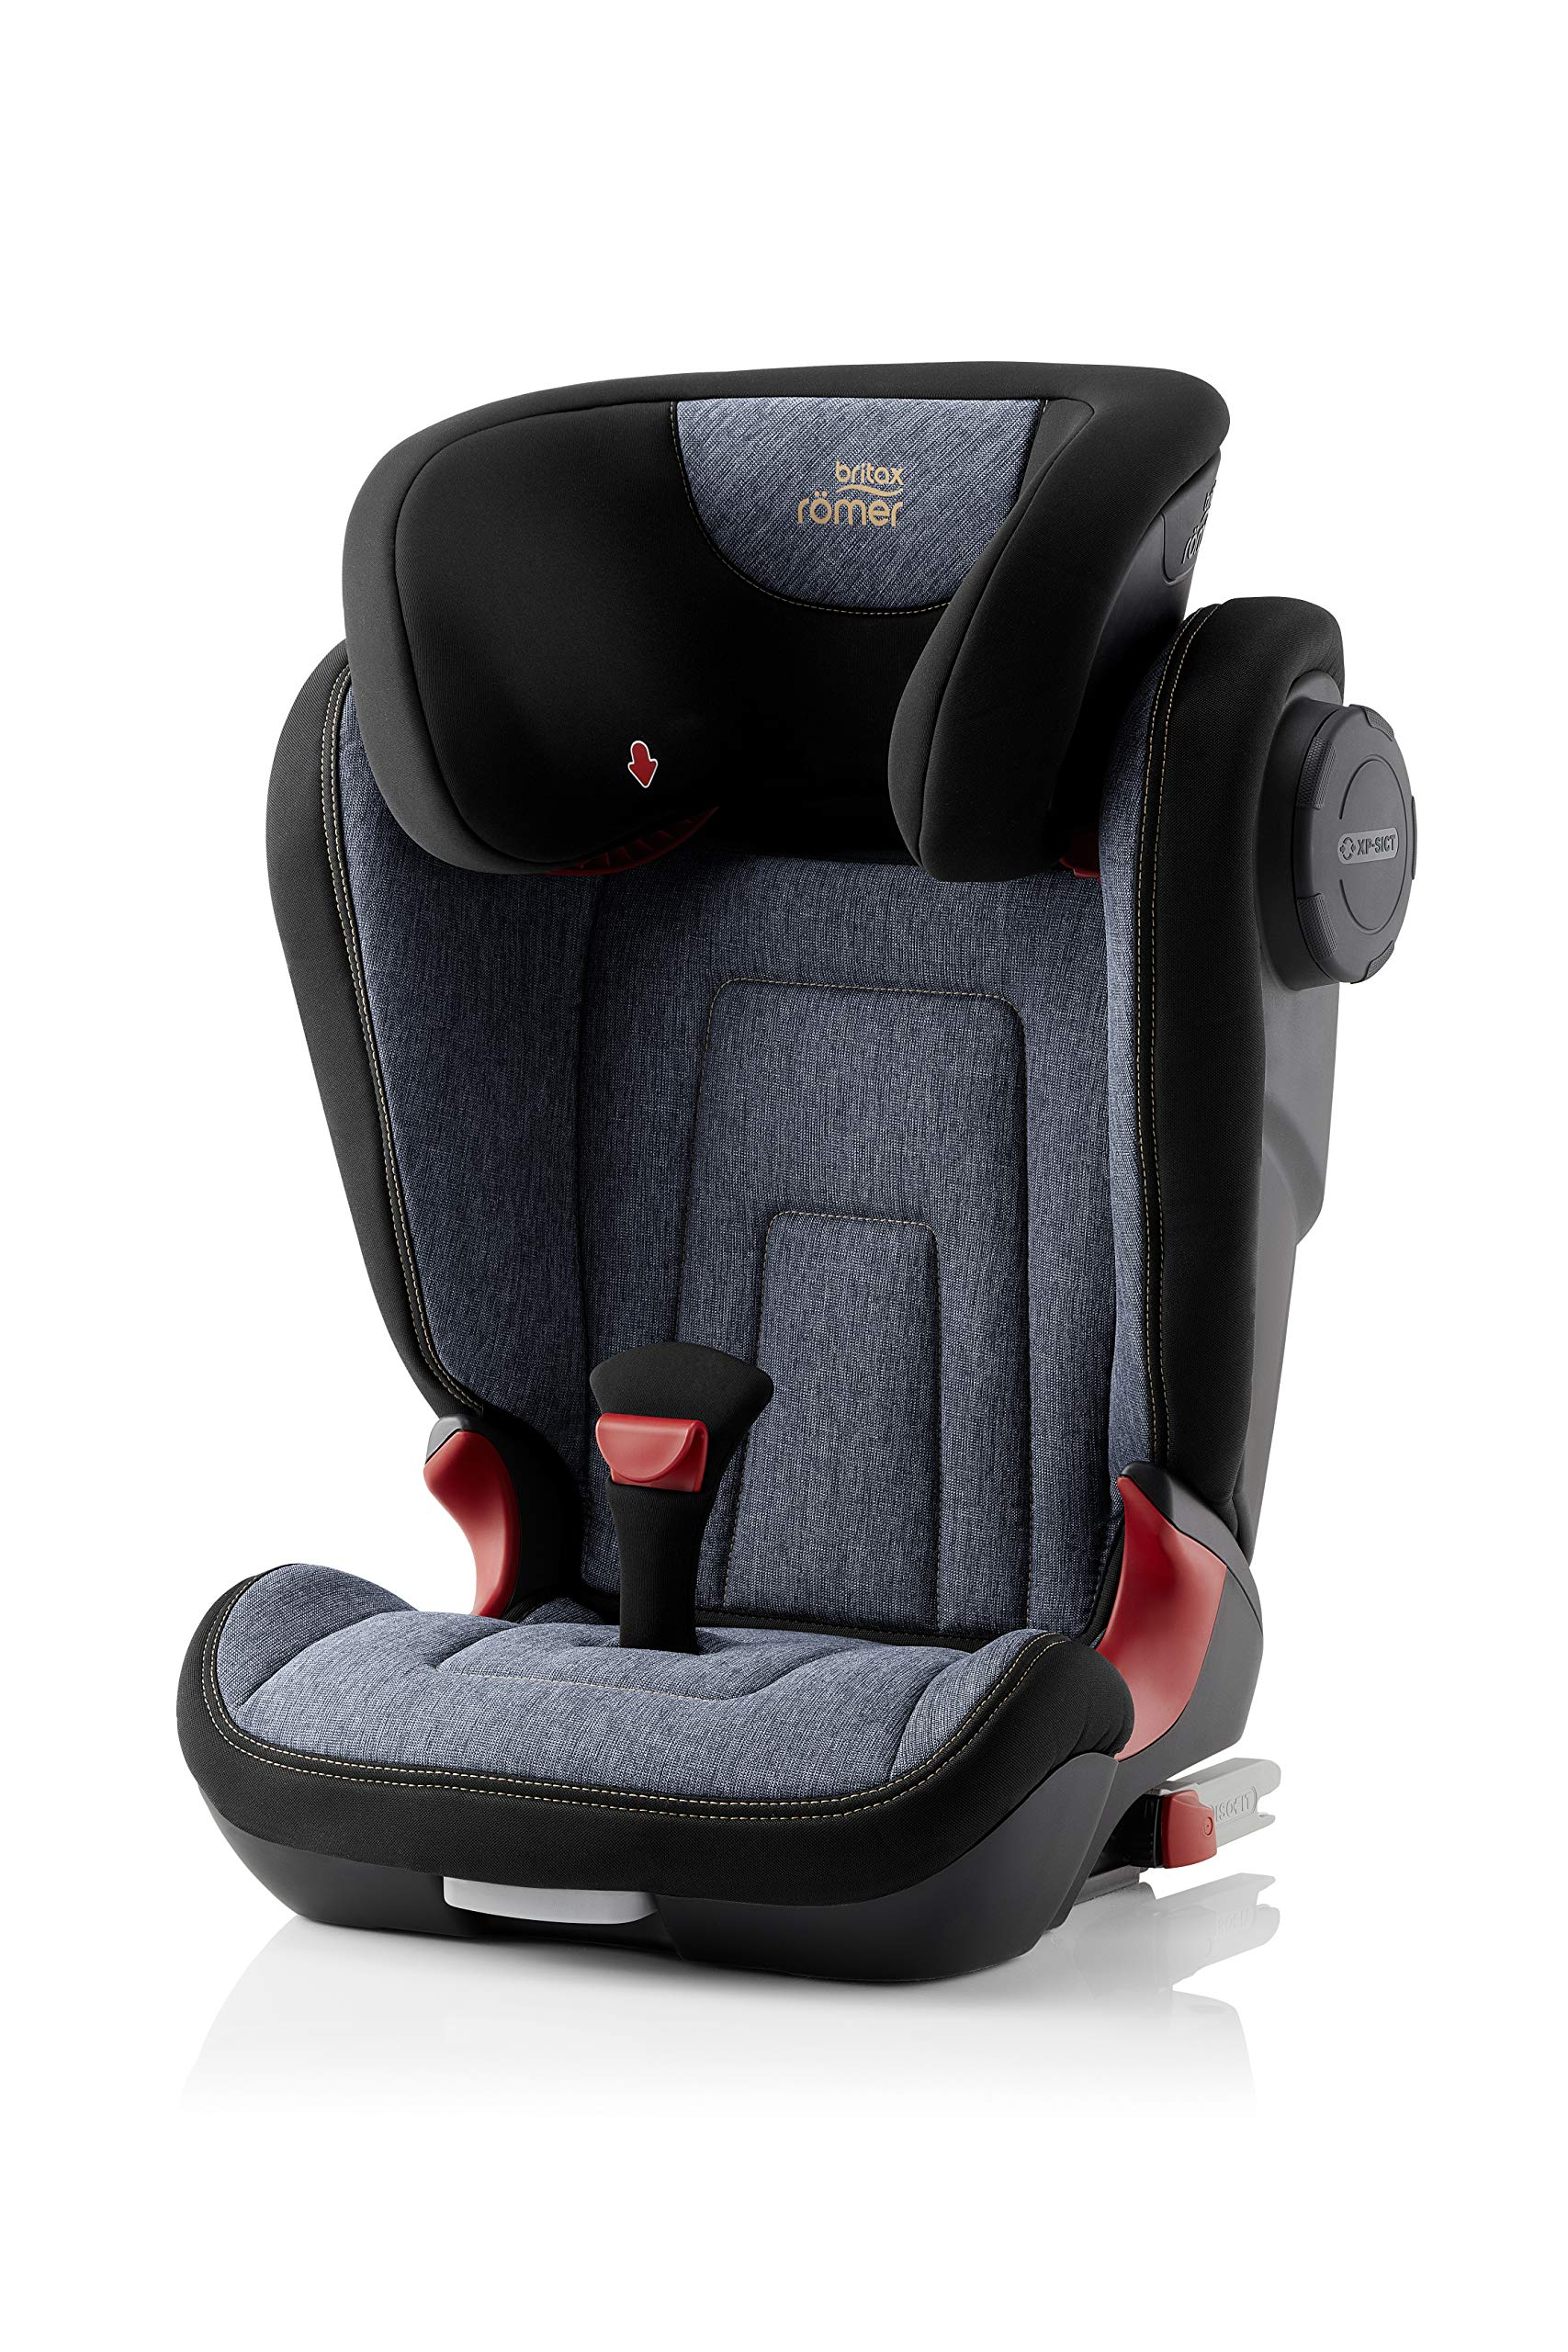 Britax Römer KIDFIX² S Group 2-3 (15-36kg) Car Seat - Blue Marble Britax Römer Advanced side impact protection - sict offers superior protection to your child in the event of a side collision. reducing impact forces by minimising the distance between the car and the car seat. Secure guard - helps to protect your child's delicate abdominal area by adding an extra - a 4th - contact point to the 3-point seat belt. High back booster - protects your child in 3 ways: provides head to hip protection; belt guides provide correct positioning of the seat belt and the padded headrest provides safety and comfort. 1